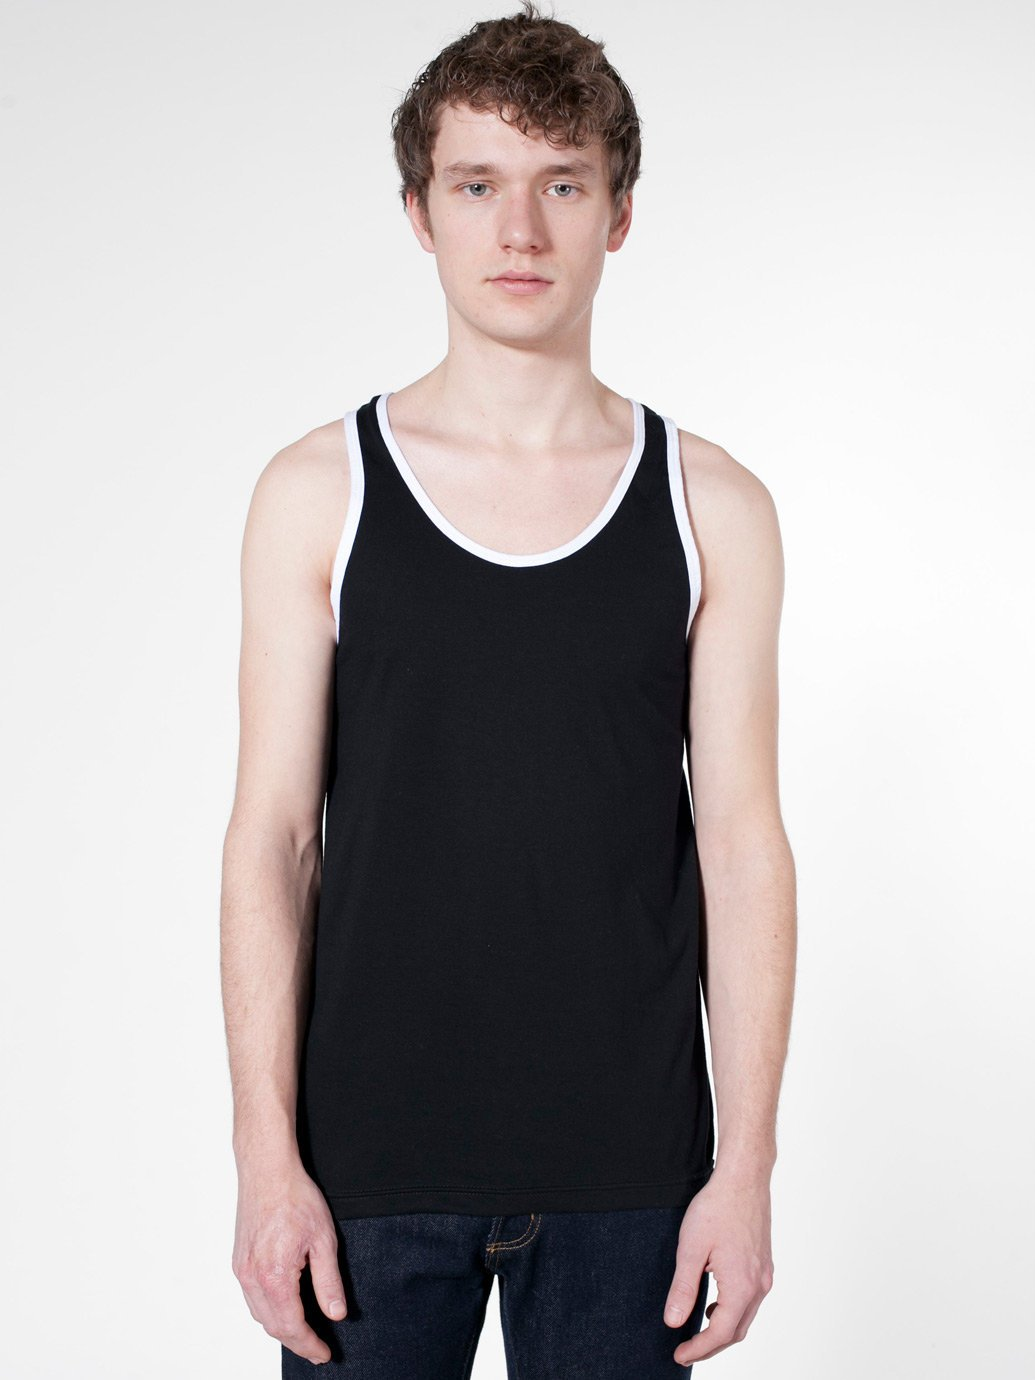 5710db264a30fd American Apparel Fine Jersey Tank - Evan Webster INK